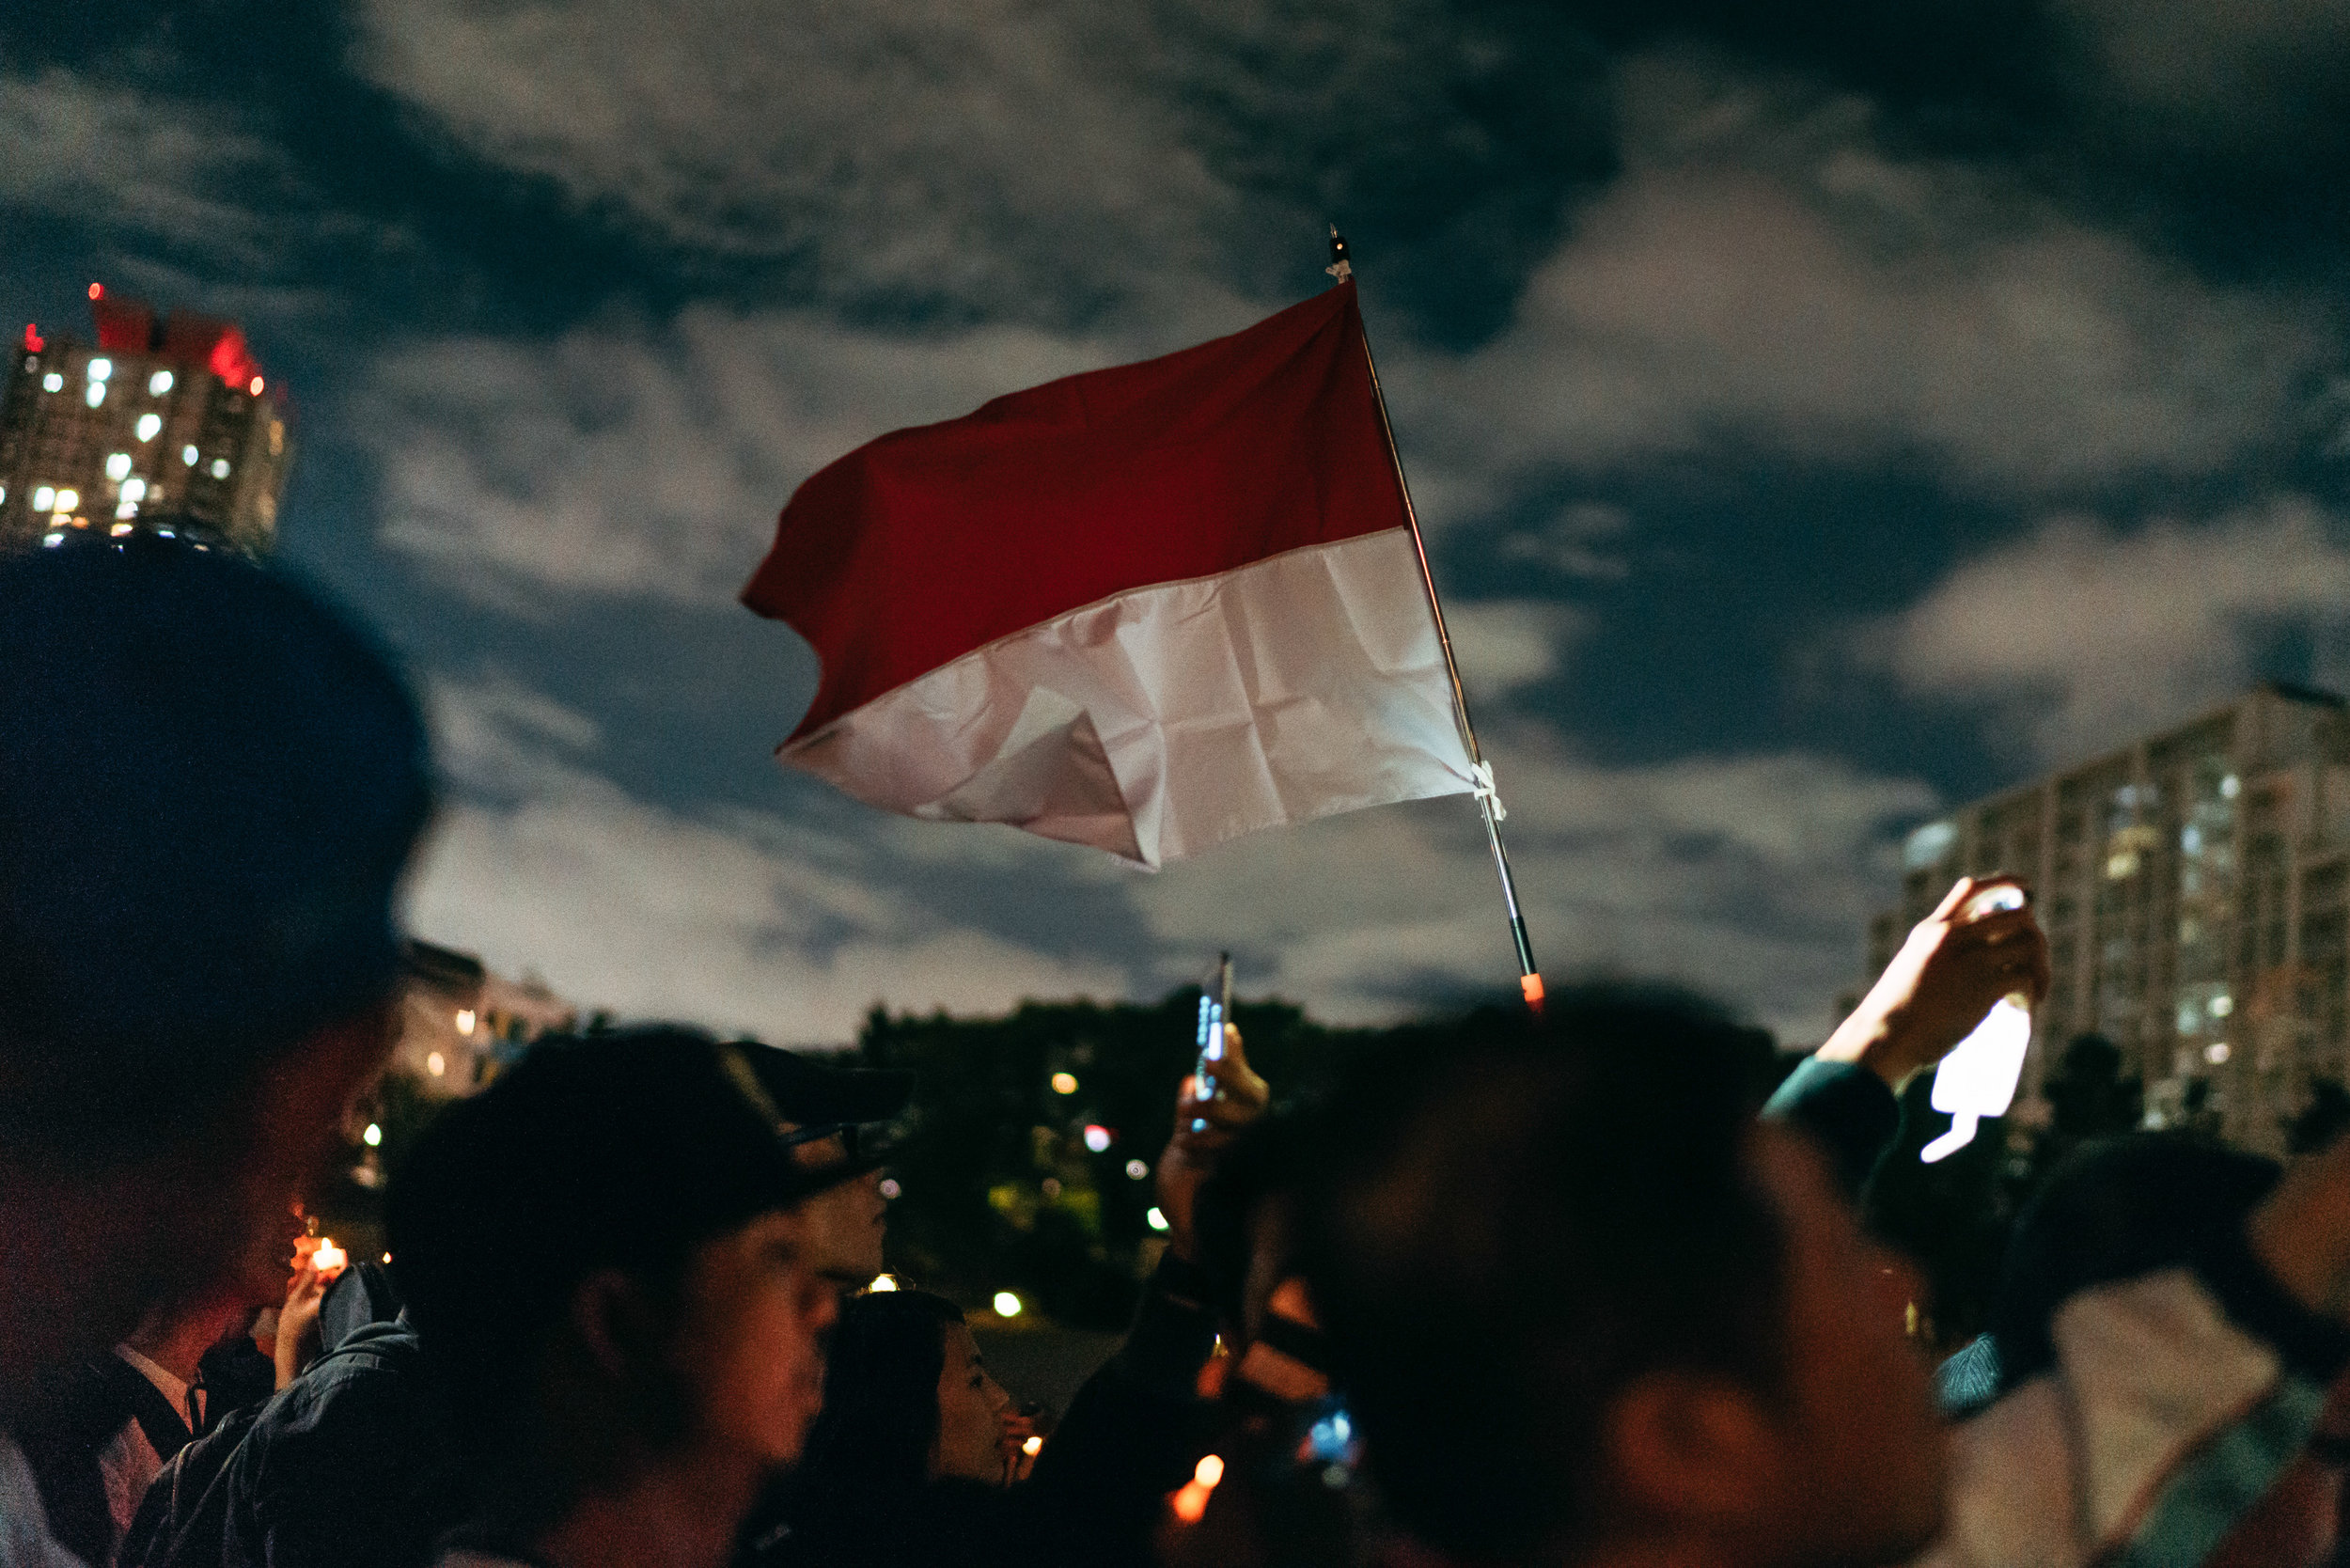 Indonesian flag flown as a chorus of the national anthem 'Indonesia Raya', and with renowned Indonesian musician Maylaffayza